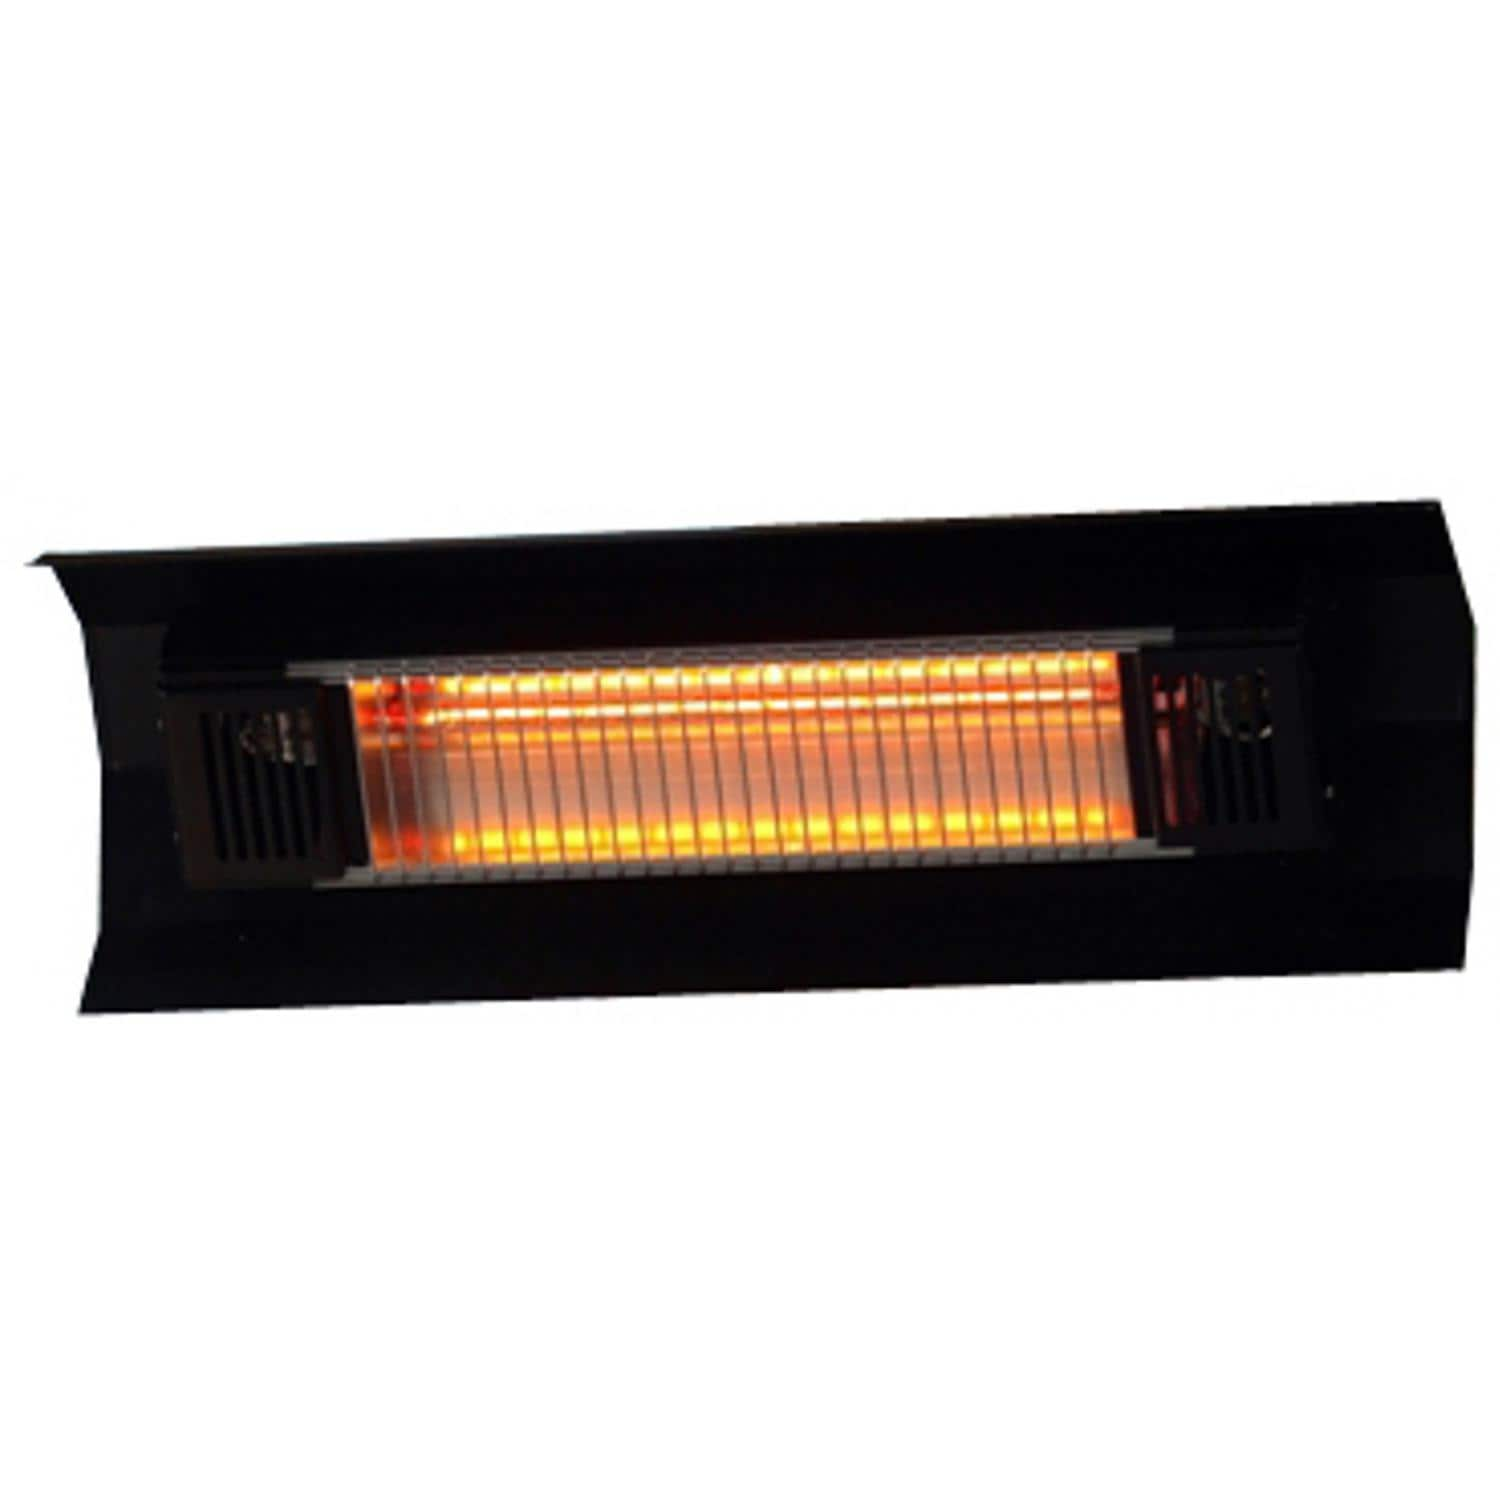 Fire Sense 22 Inch 1500w Electric Infrared Patio Heater